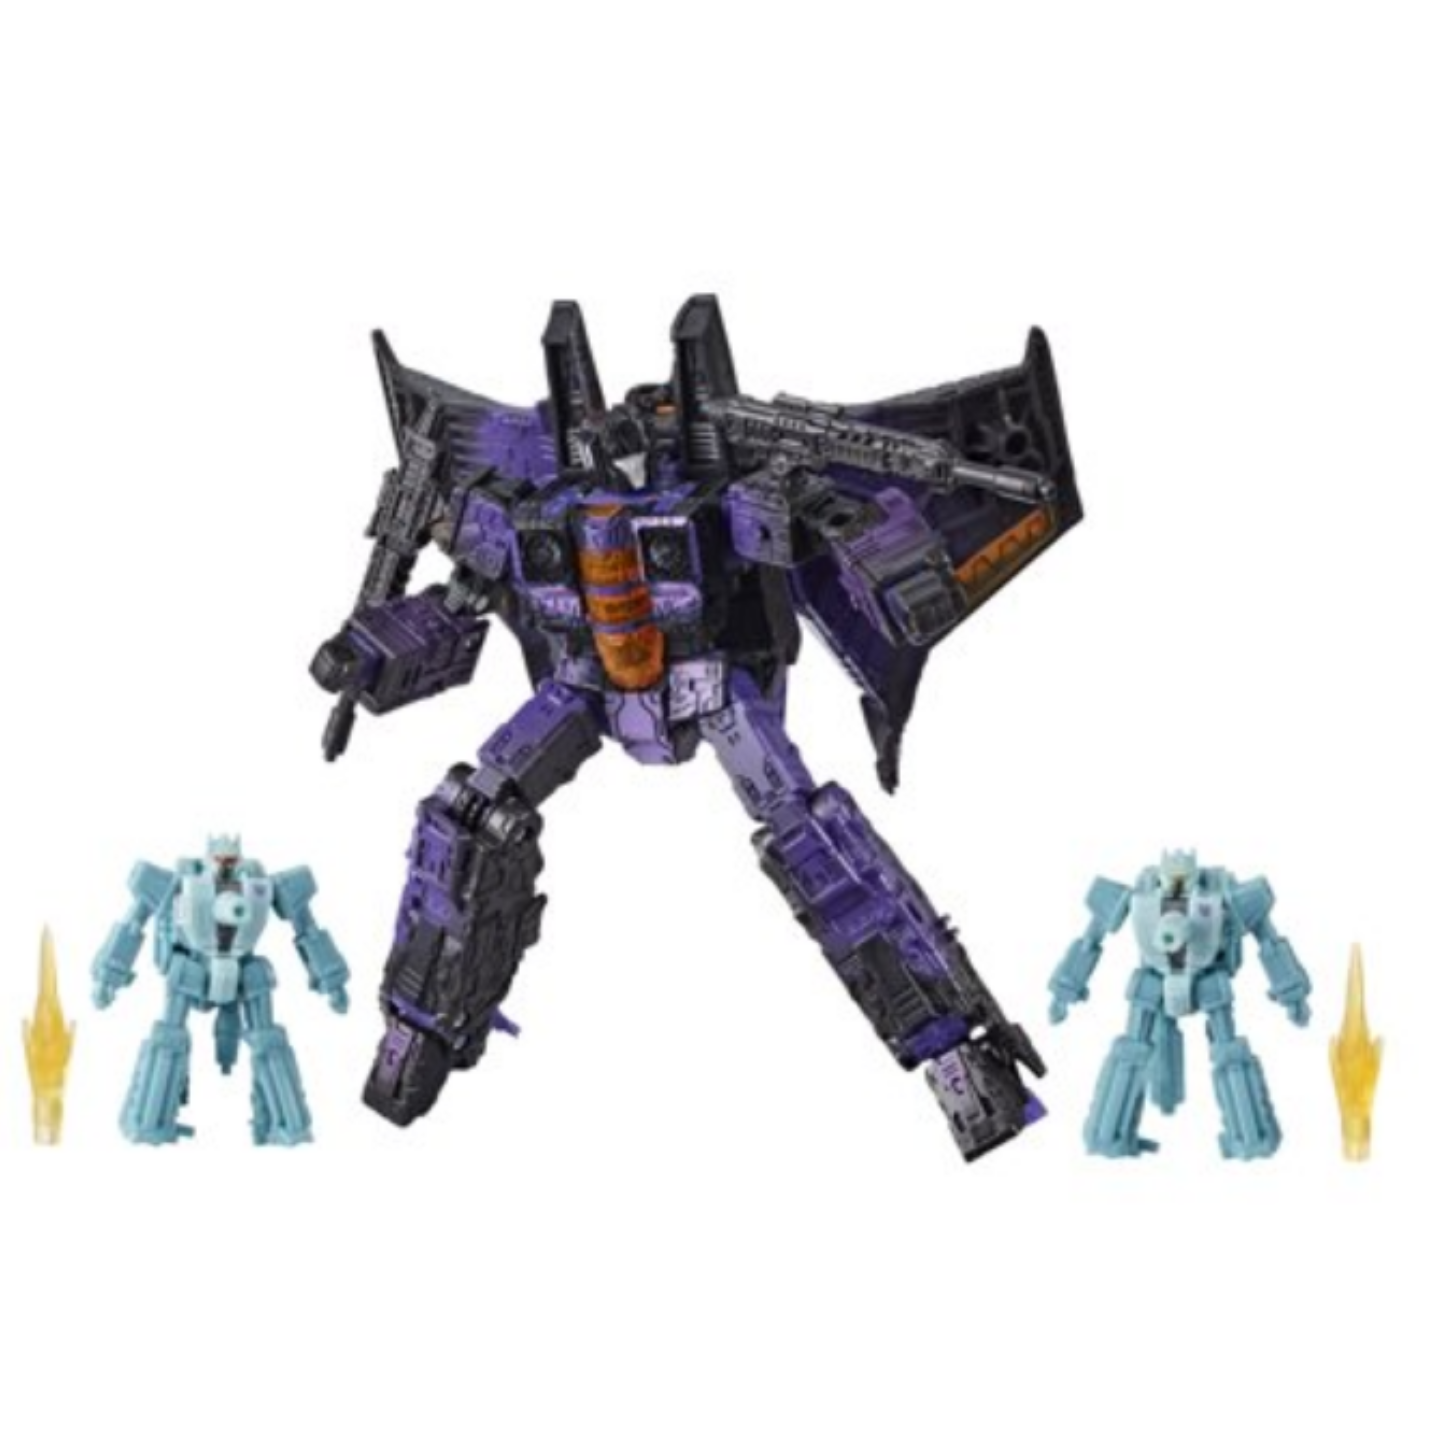 Transformers News: Transformers Netflix Series Exclusive Megatron and Hotlink Found in Canada